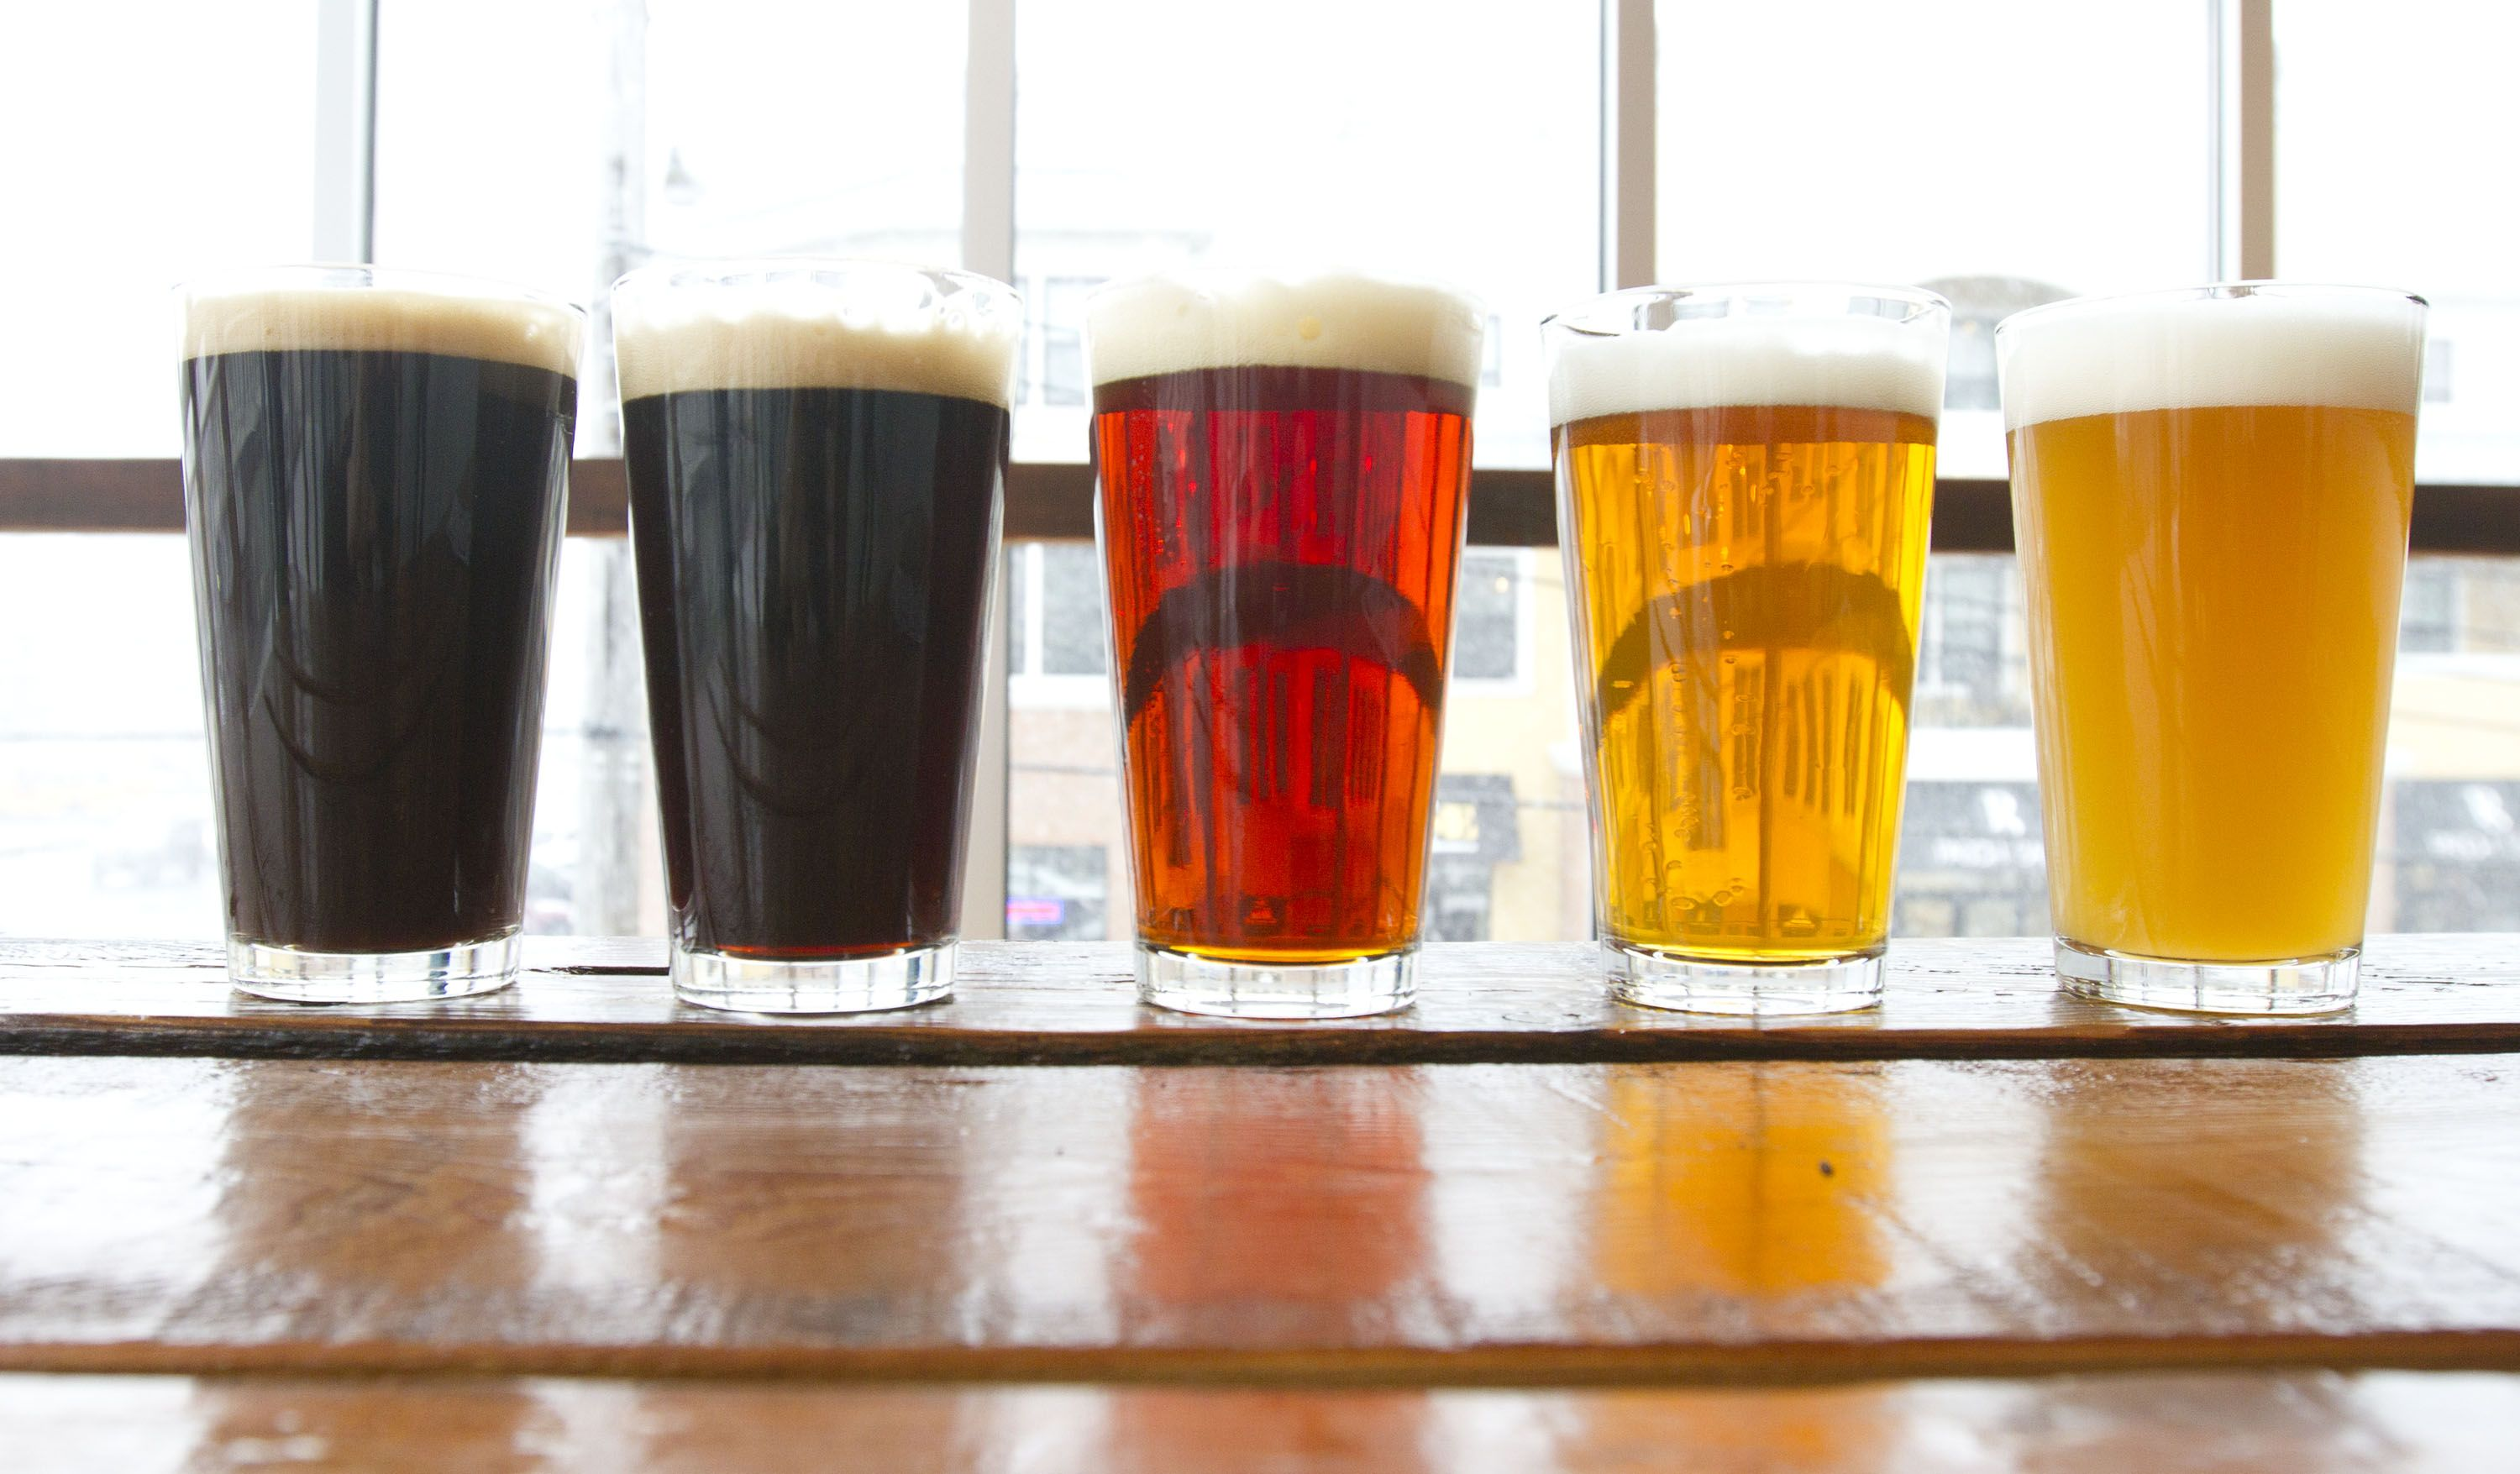 NJ beer 7 craft beers to try this fall at the Jersey